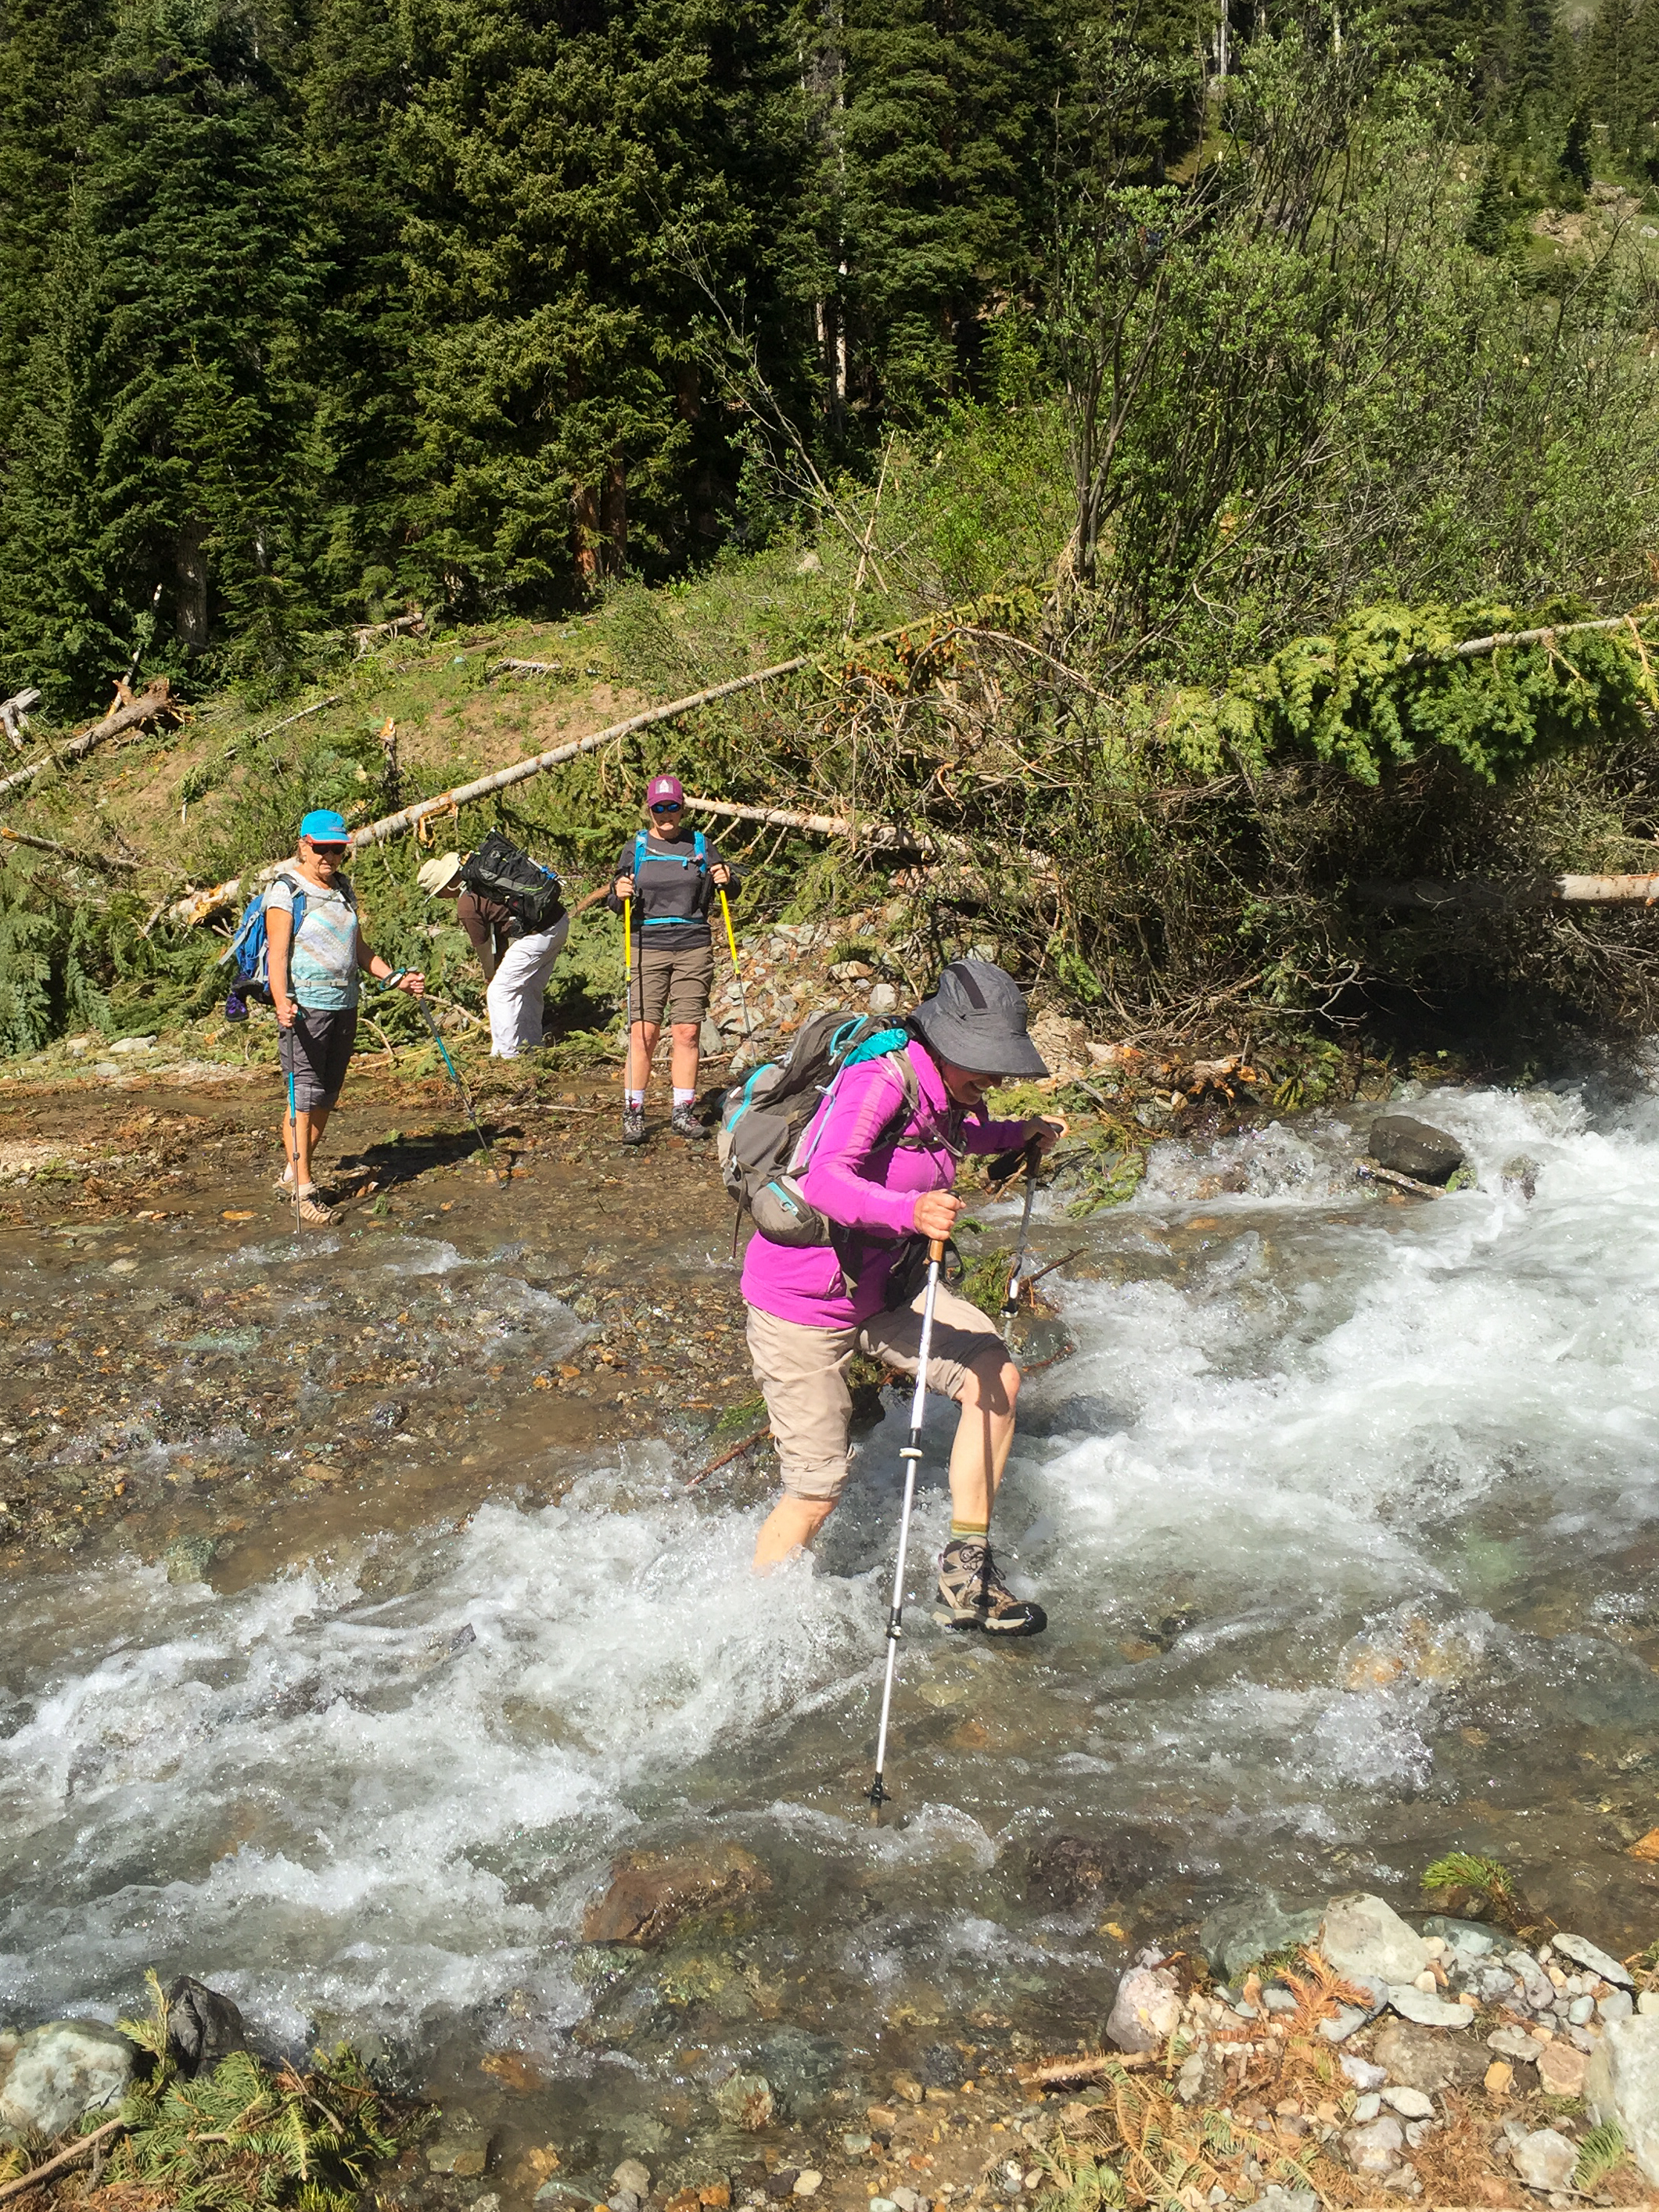 The second water crossing was a little deeper. Notice Gina pulled her pants up higher this time.